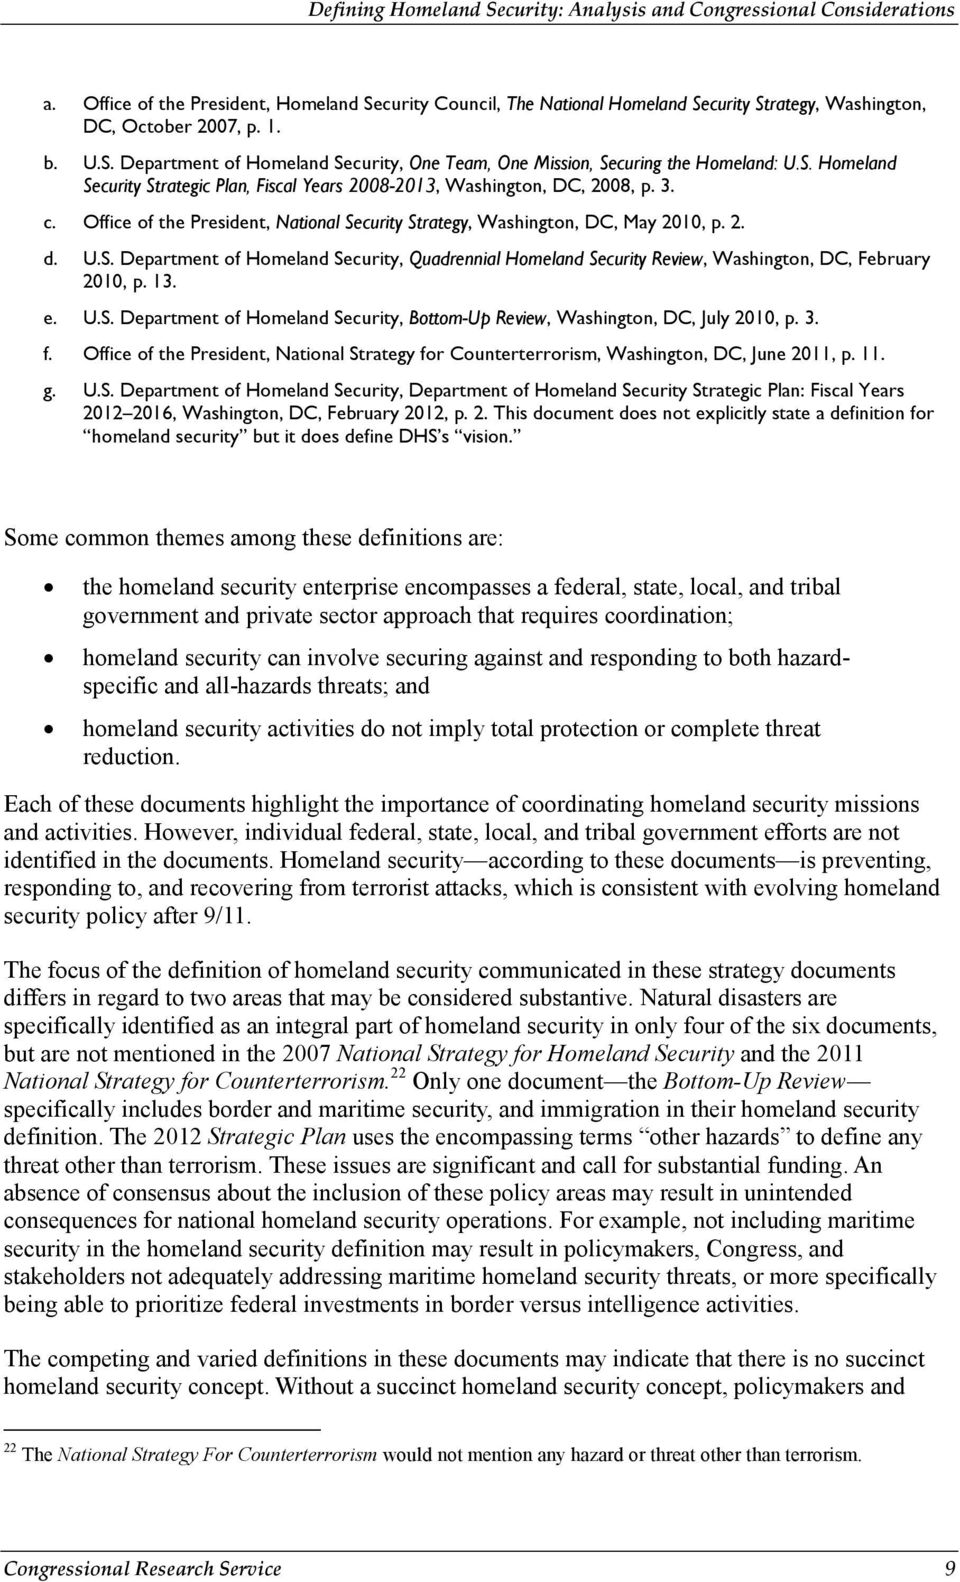 13. e. U.S. Department of Homeland Security, Bottom-Up Review, Washington, DC, July 2010, p. 3. f. Office of the President, National Strategy for Counterterrorism, Washington, DC, June 2011, p. 11. g.